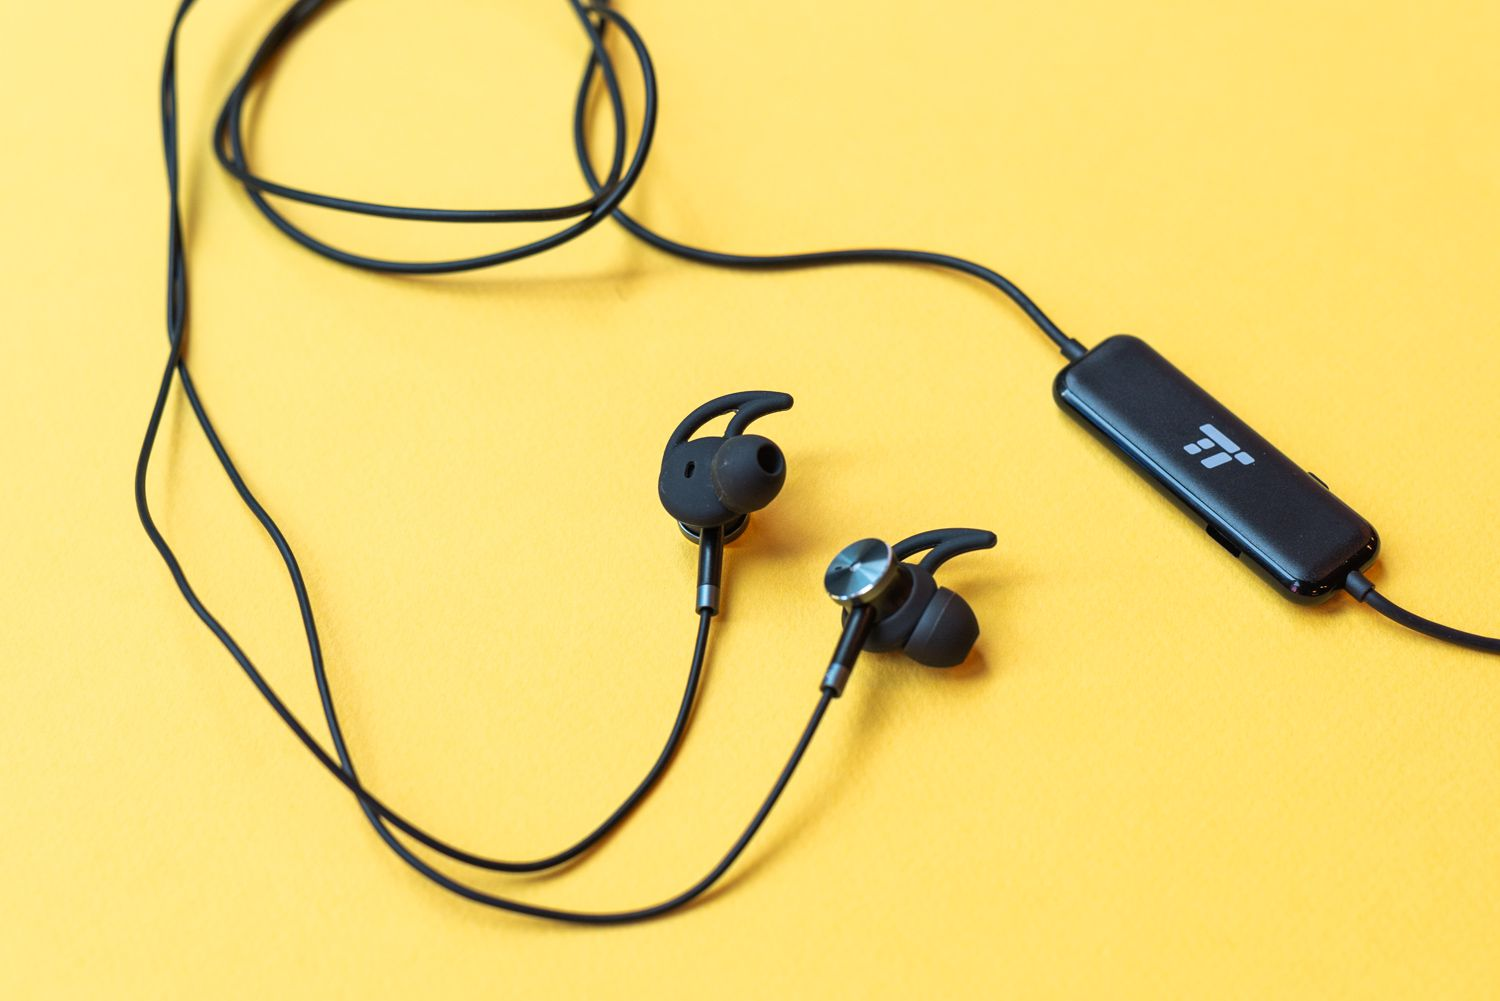 3a5bb9e219b The 12 Best Earbuds of 2019